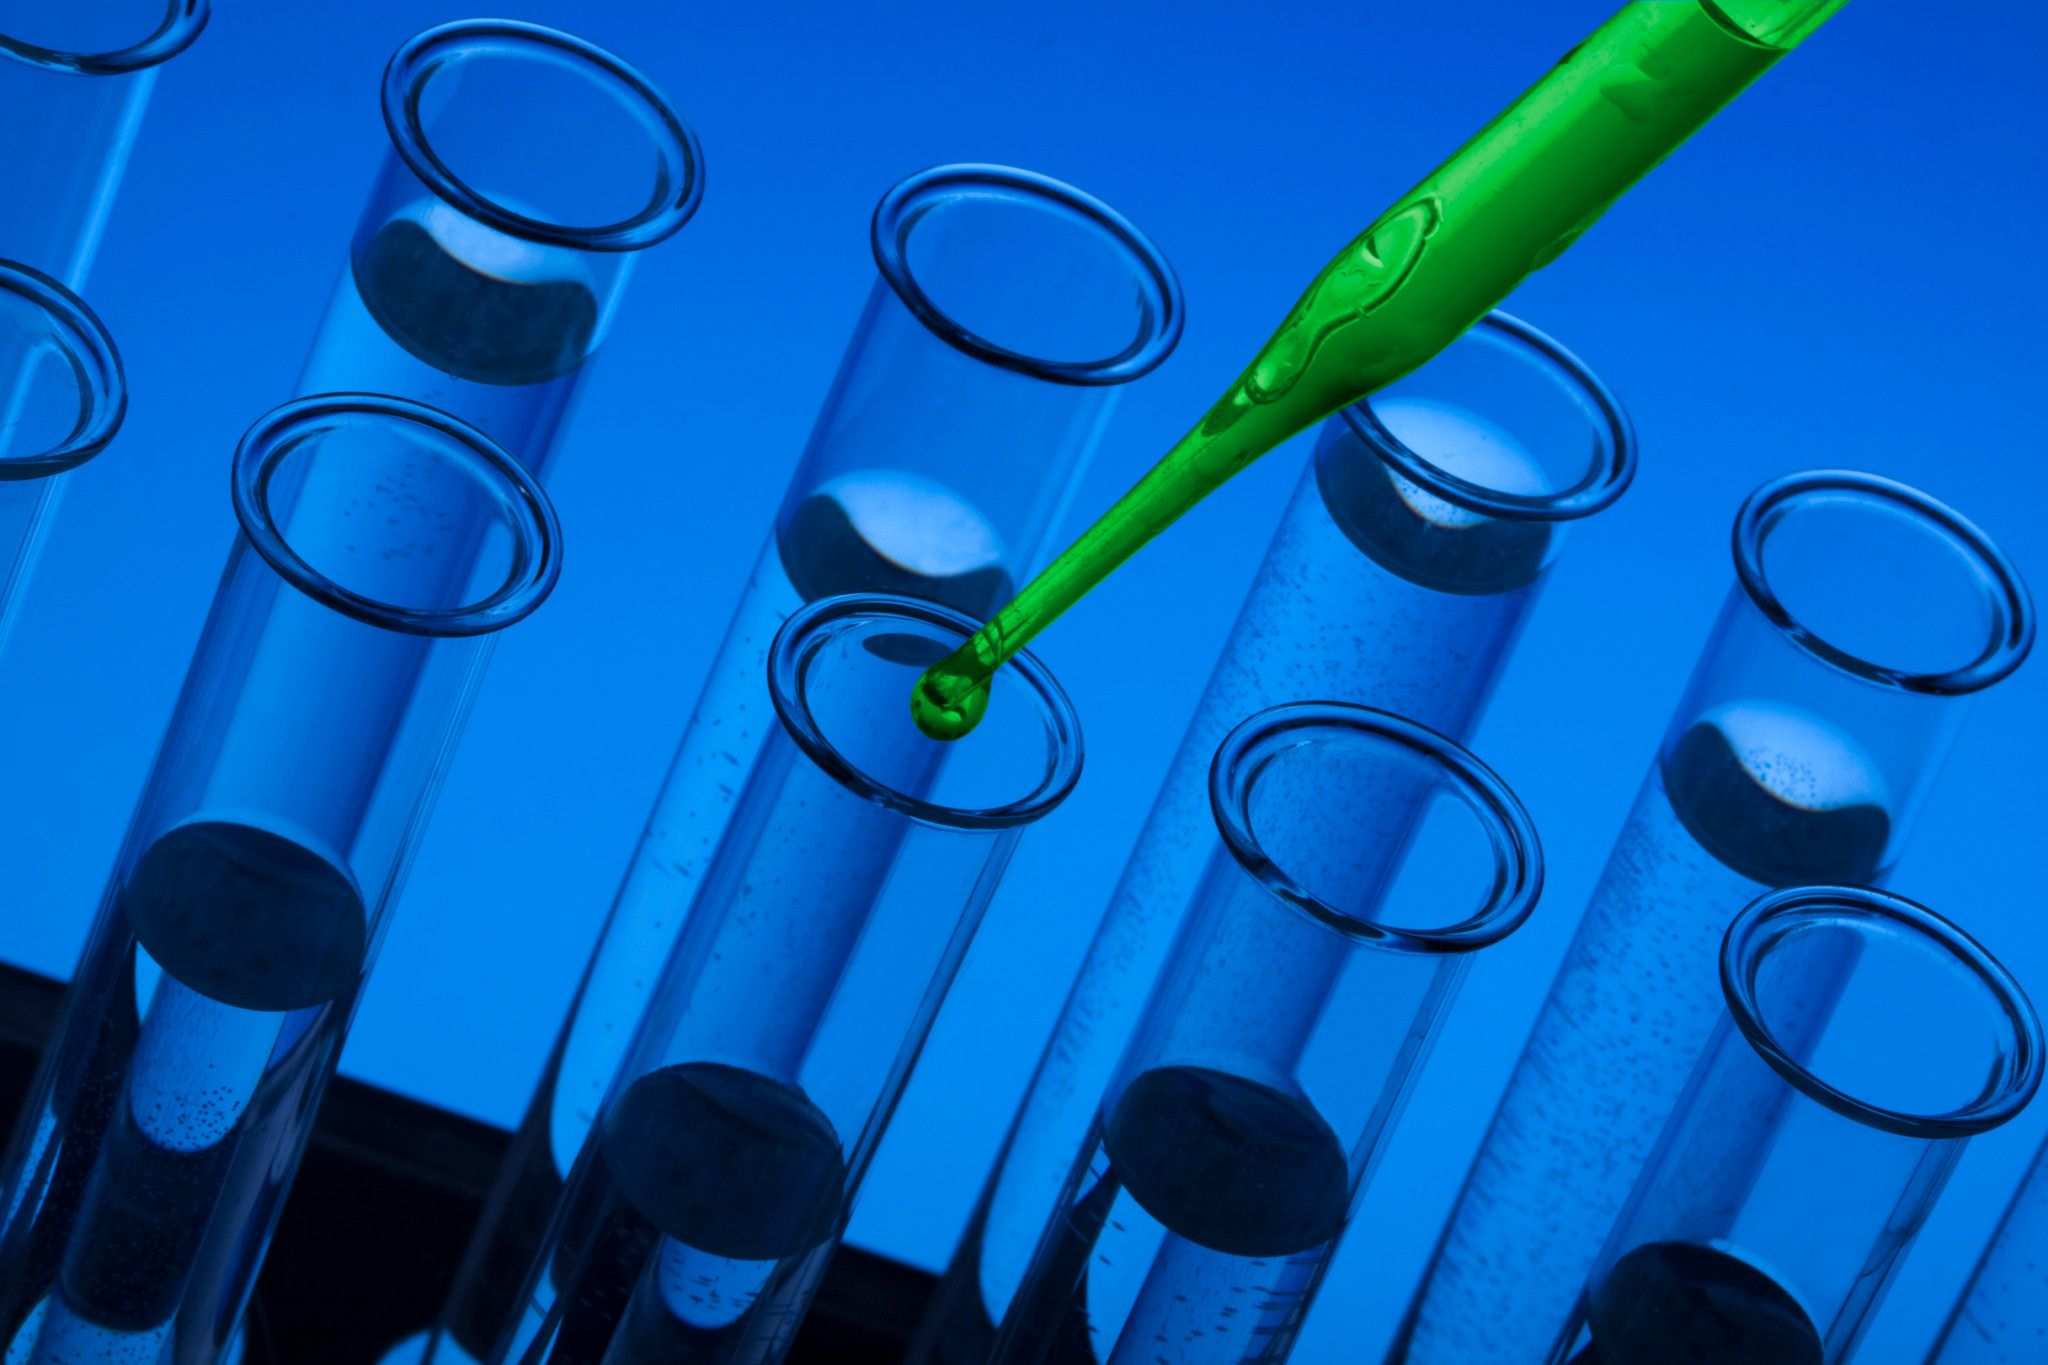 analytical testing of a pharmaceutical compound